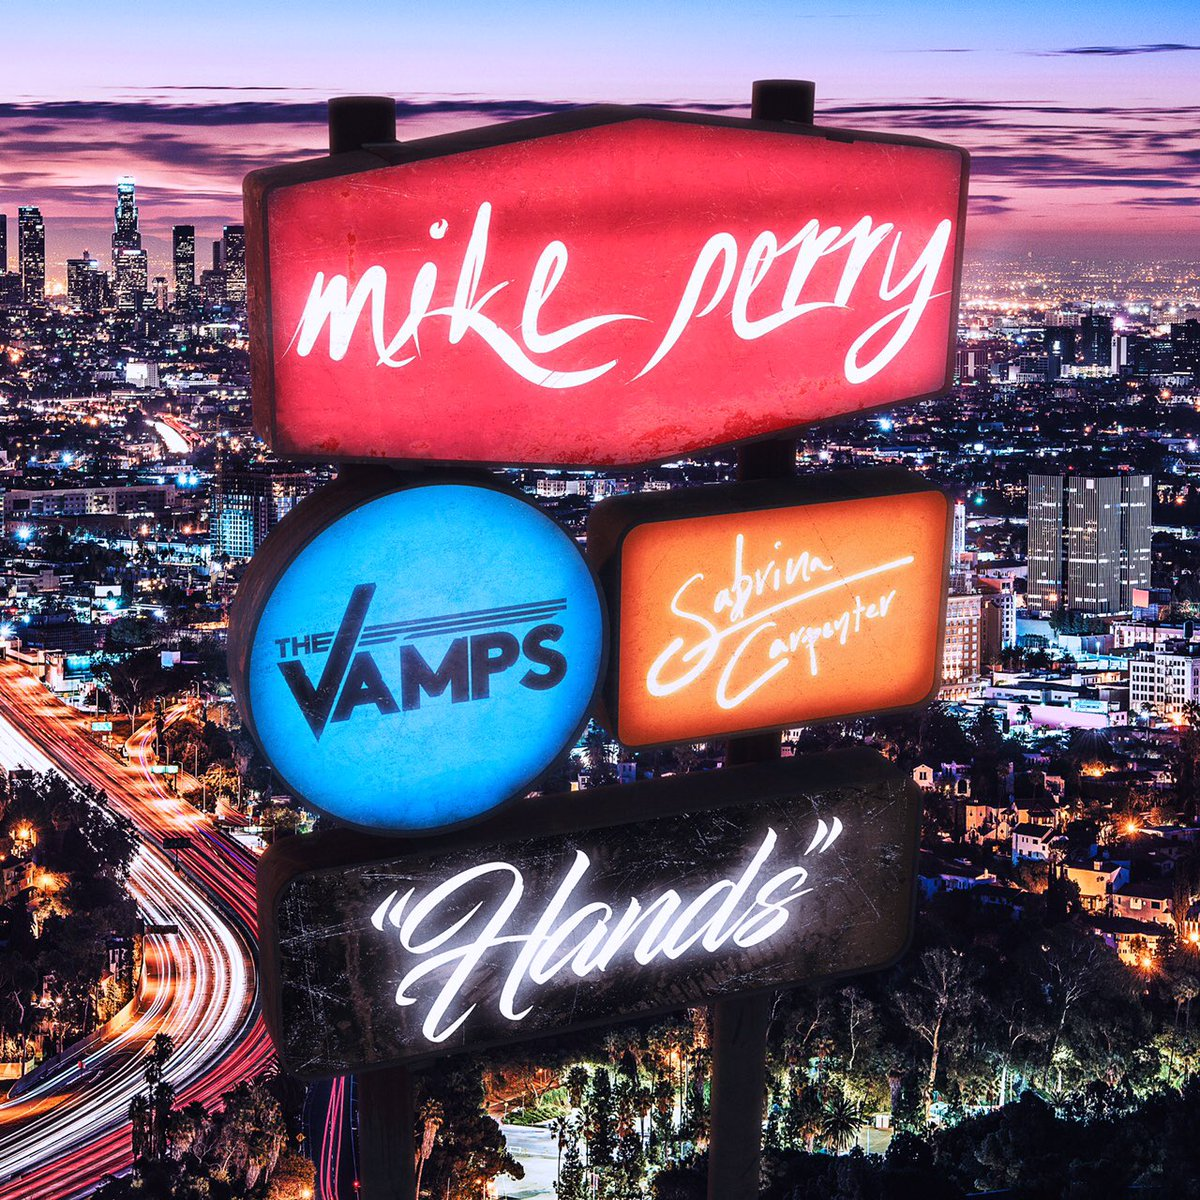 mike-perry-releases-hands-featuring-the-vamps-and-sabrina-carpenter-01.jpg